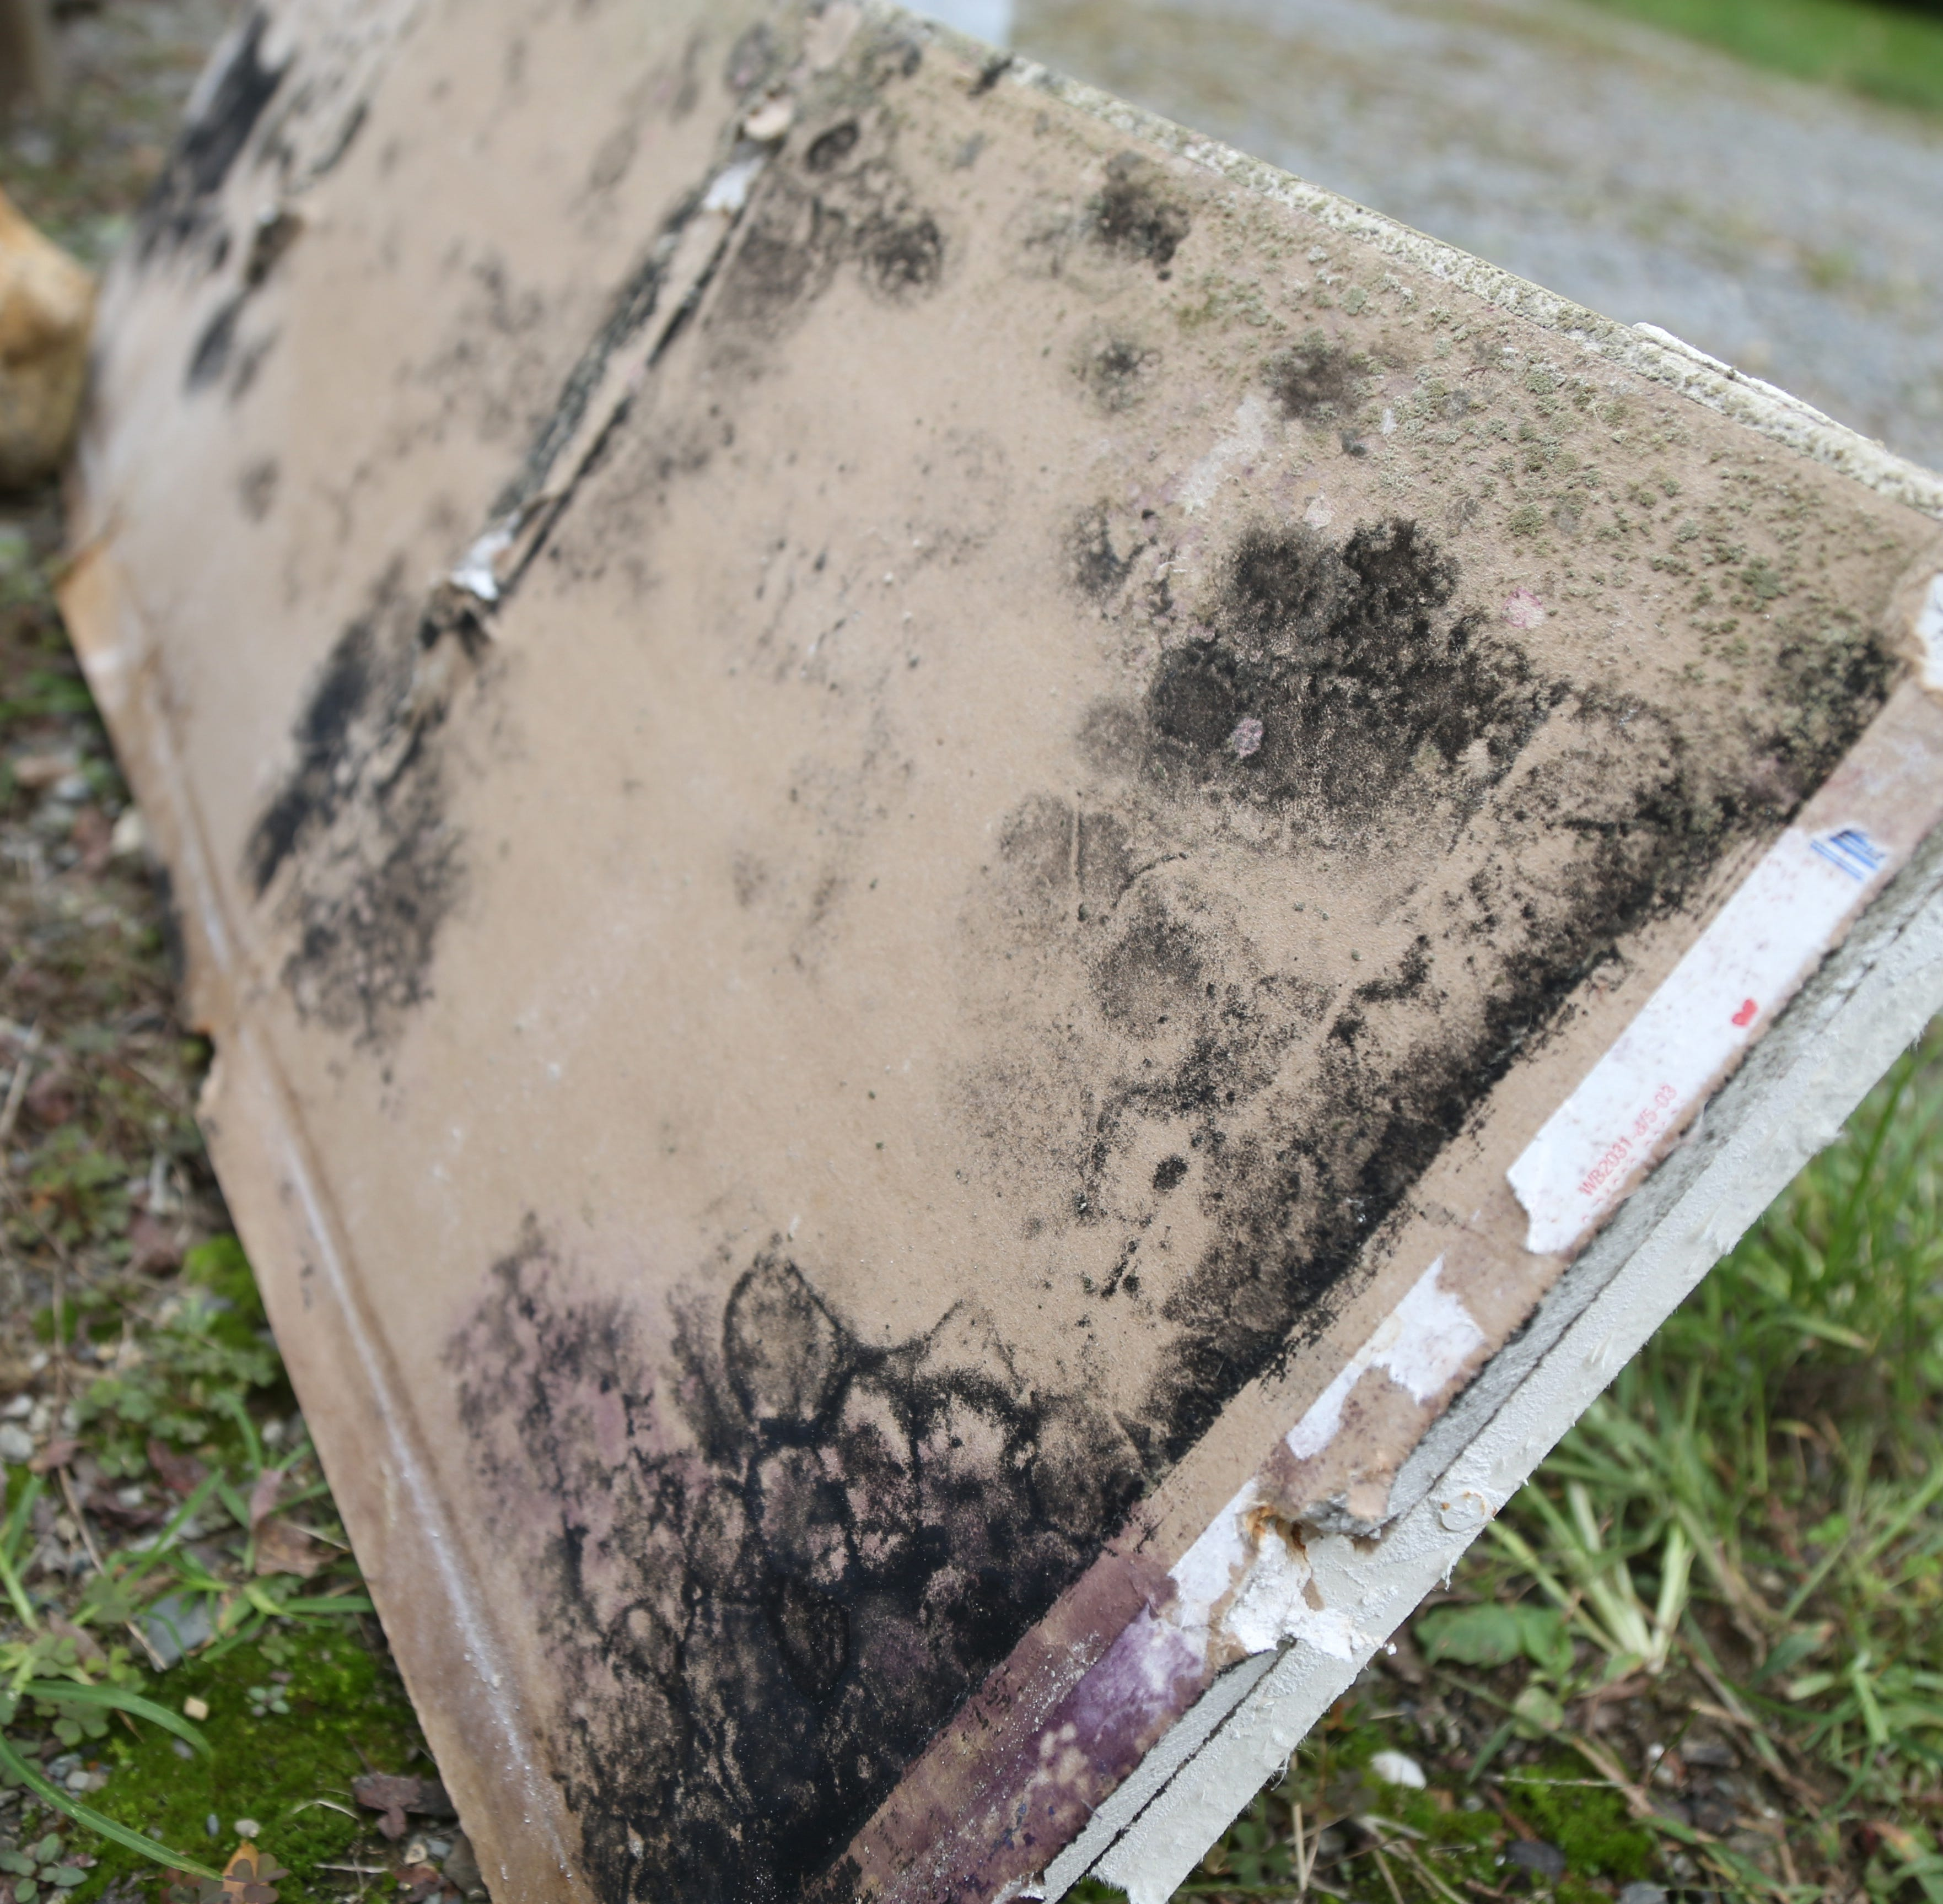 Tips on preventing and getting rid of mold to protect health and home